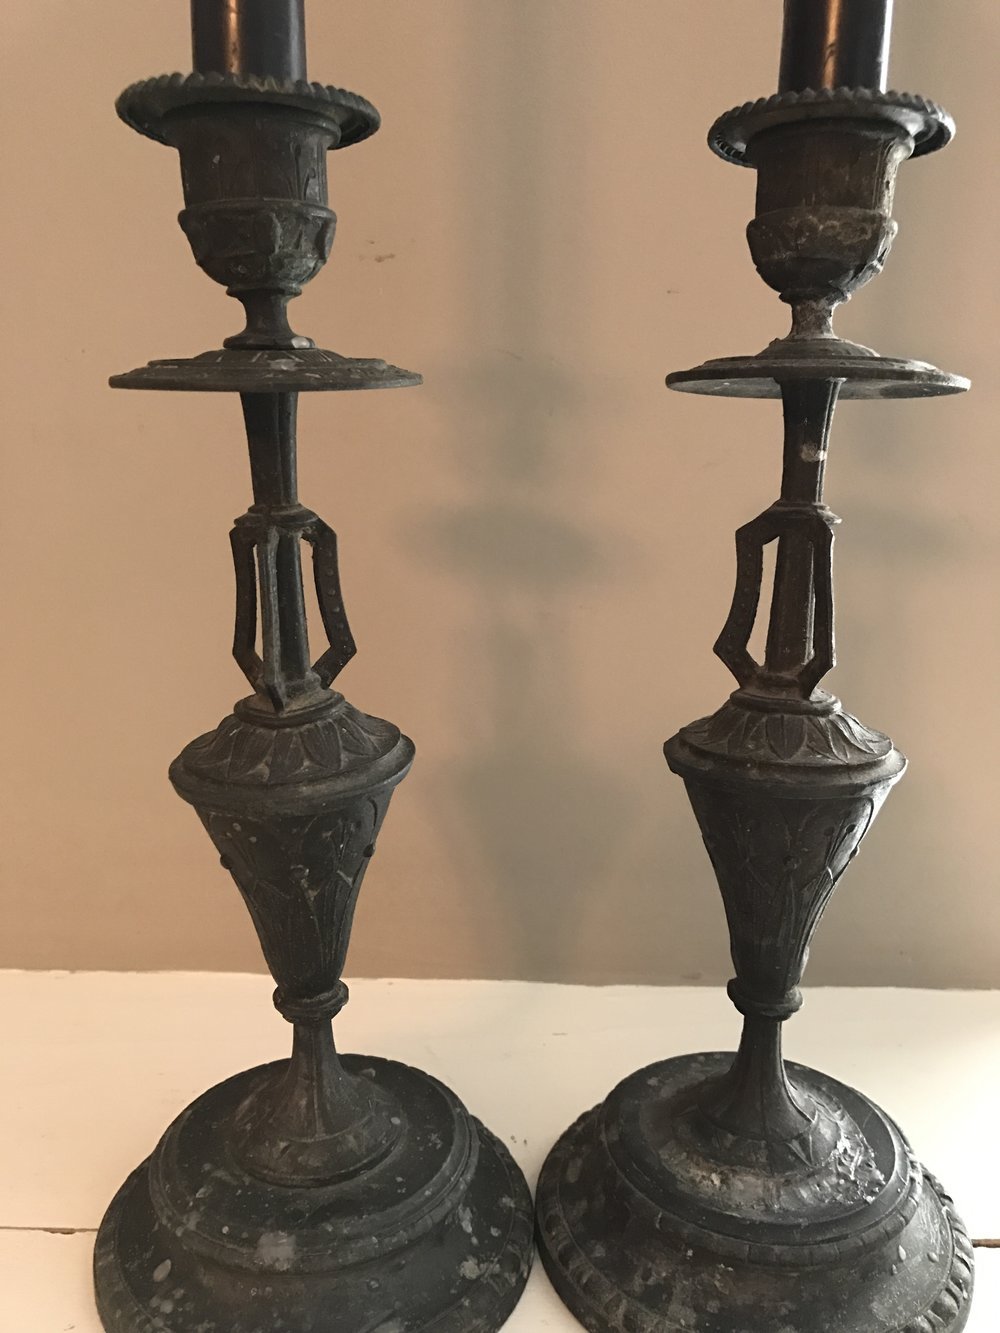 A SET OF CANDLESTICKS PURCHASED IN A PARIS FLEA MARKET DURING ONE OF PAT'S FIRST EUROPEAN LAYOVERS.